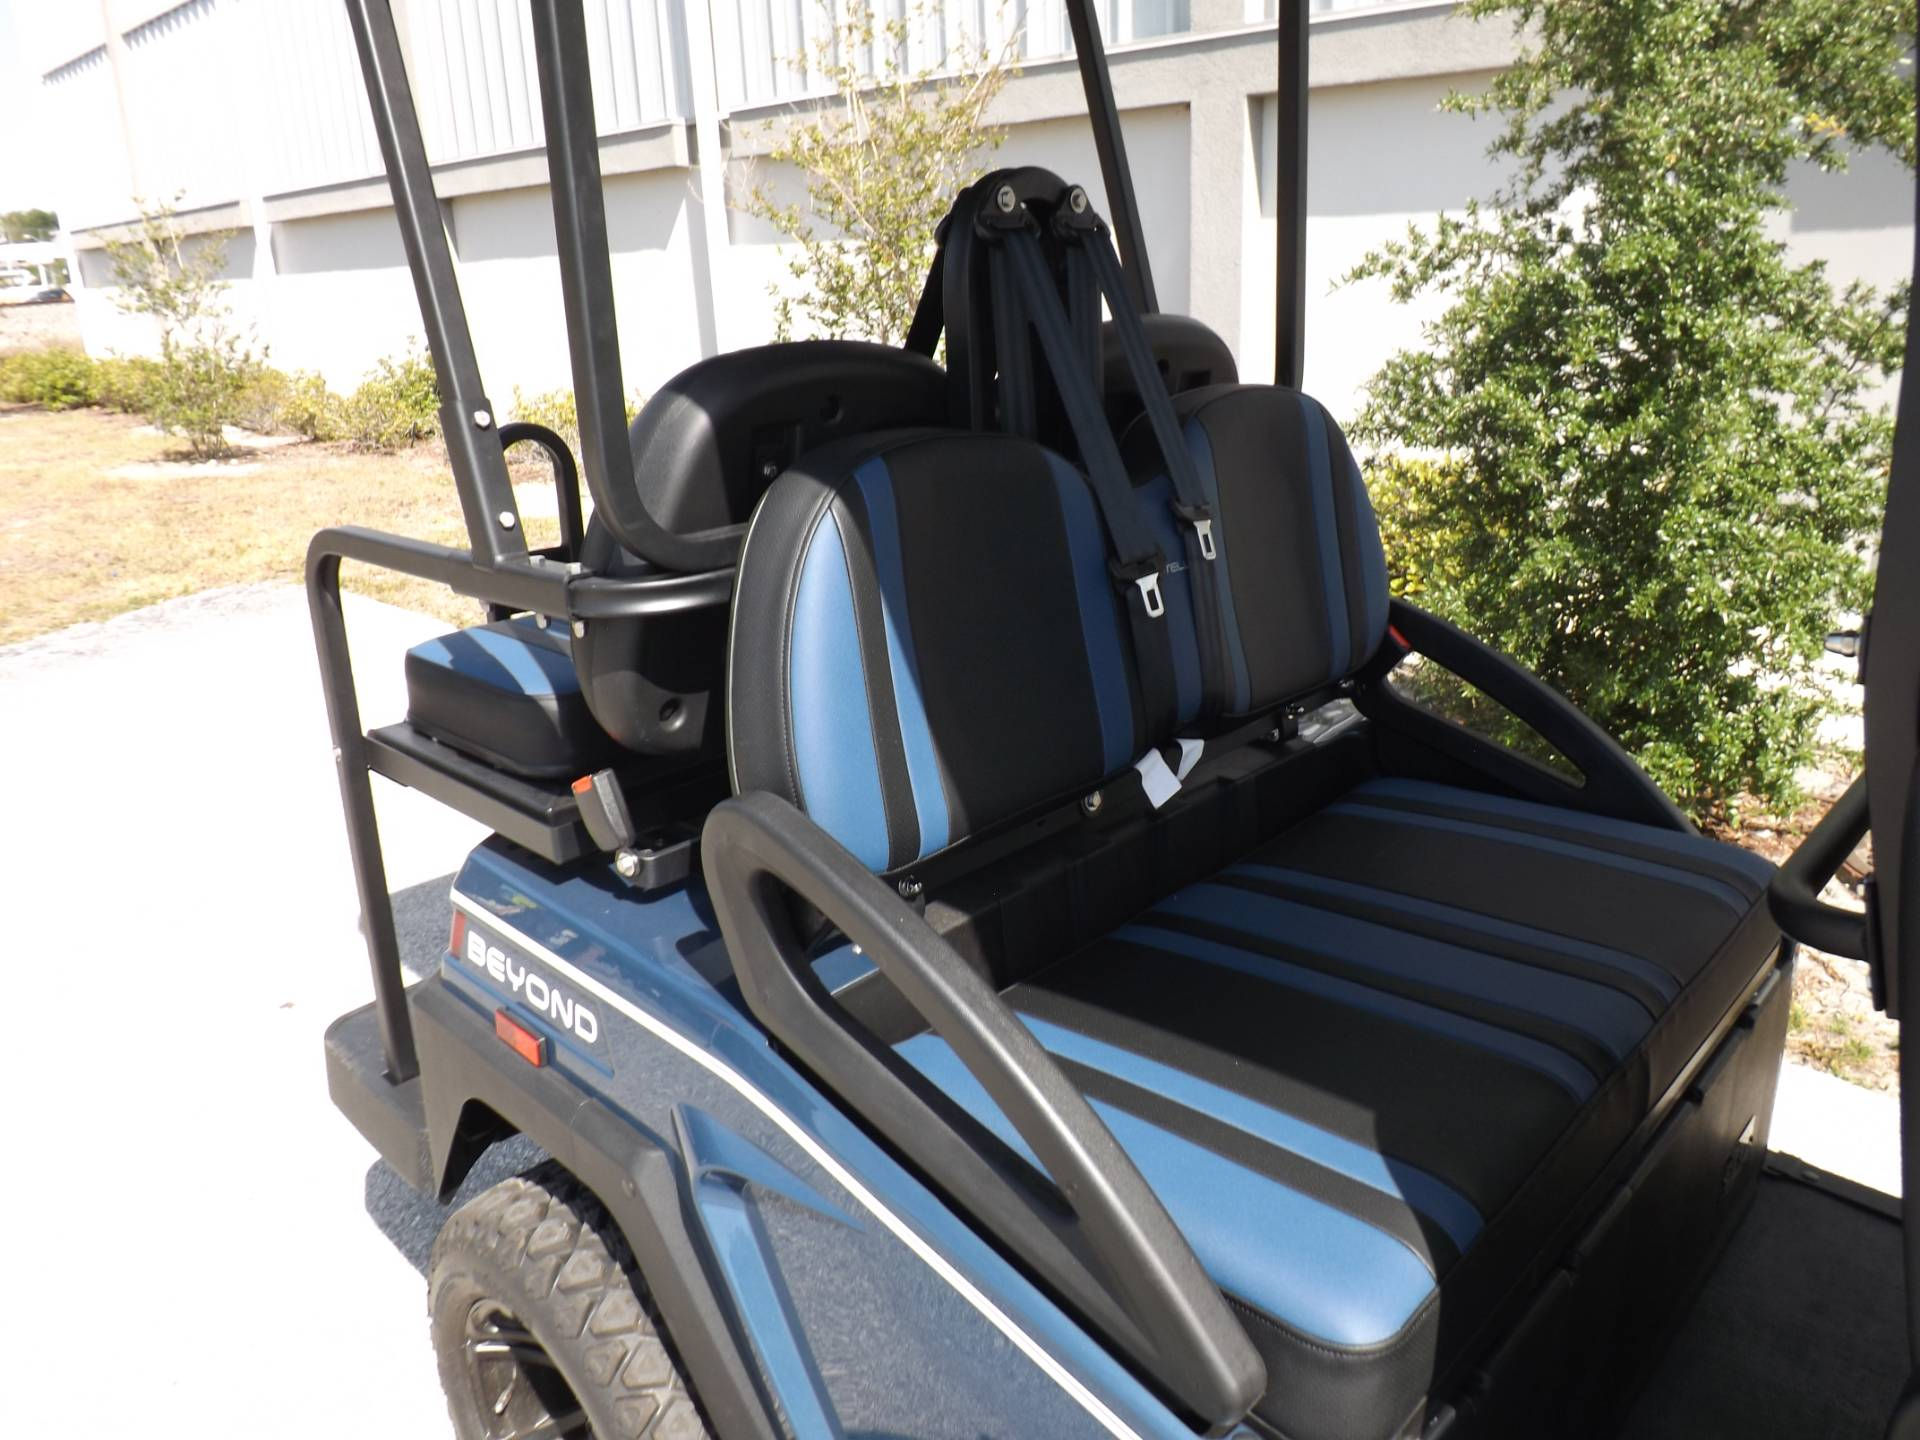 2021 Bintelli BEYOND 6P LIFTED STREET LEGAL GOLF CART in Lakeland, Florida - Photo 14